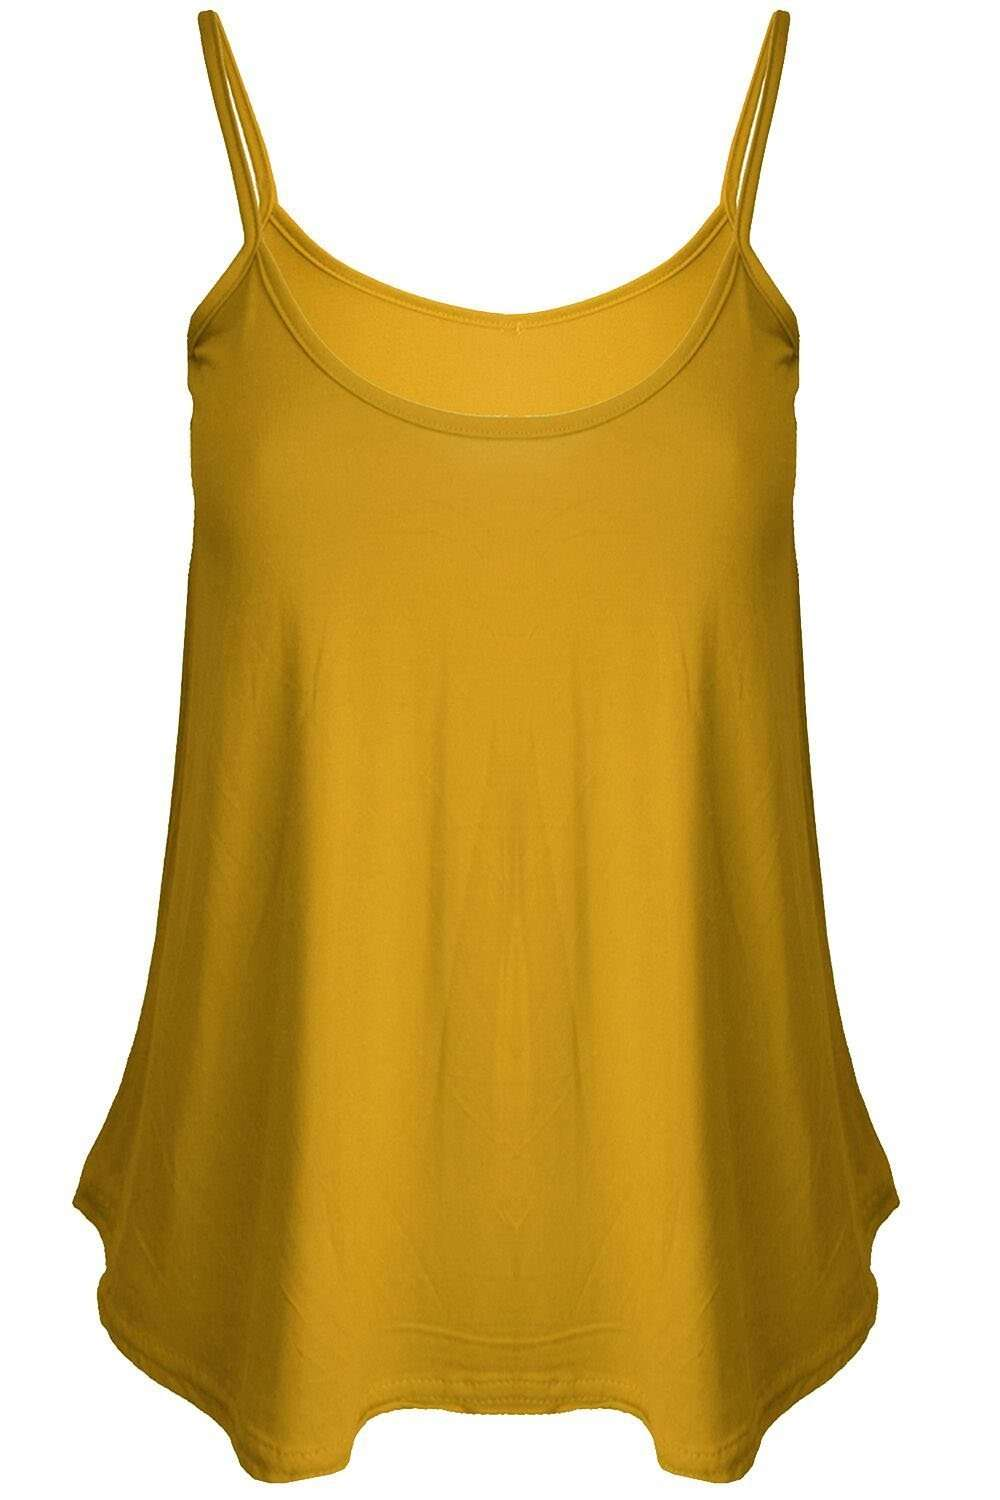 Mustard Strappy Basic Cami Swing Top - bejealous-com